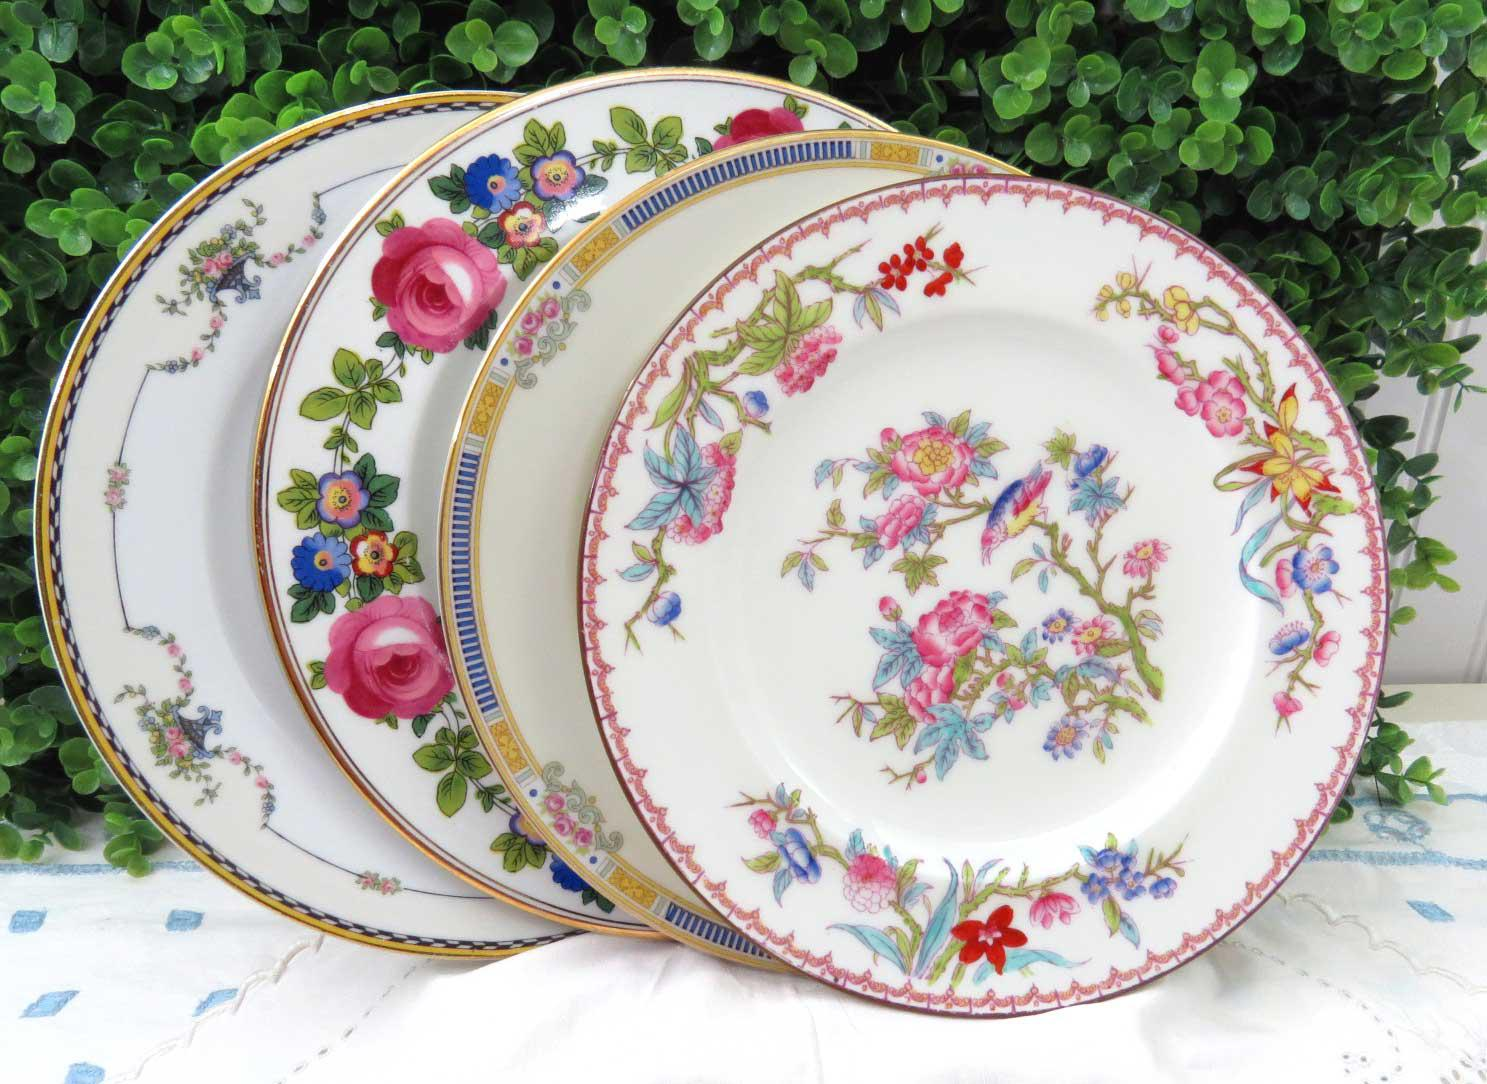 Vintage Mismatched Pink Floral China Dinner Plates - Set of 4 - Image 2 of 10  sc 1 st  Chairish & Vintage Mismatched Pink Floral China Dinner Plates - Set of 4 | Chairish